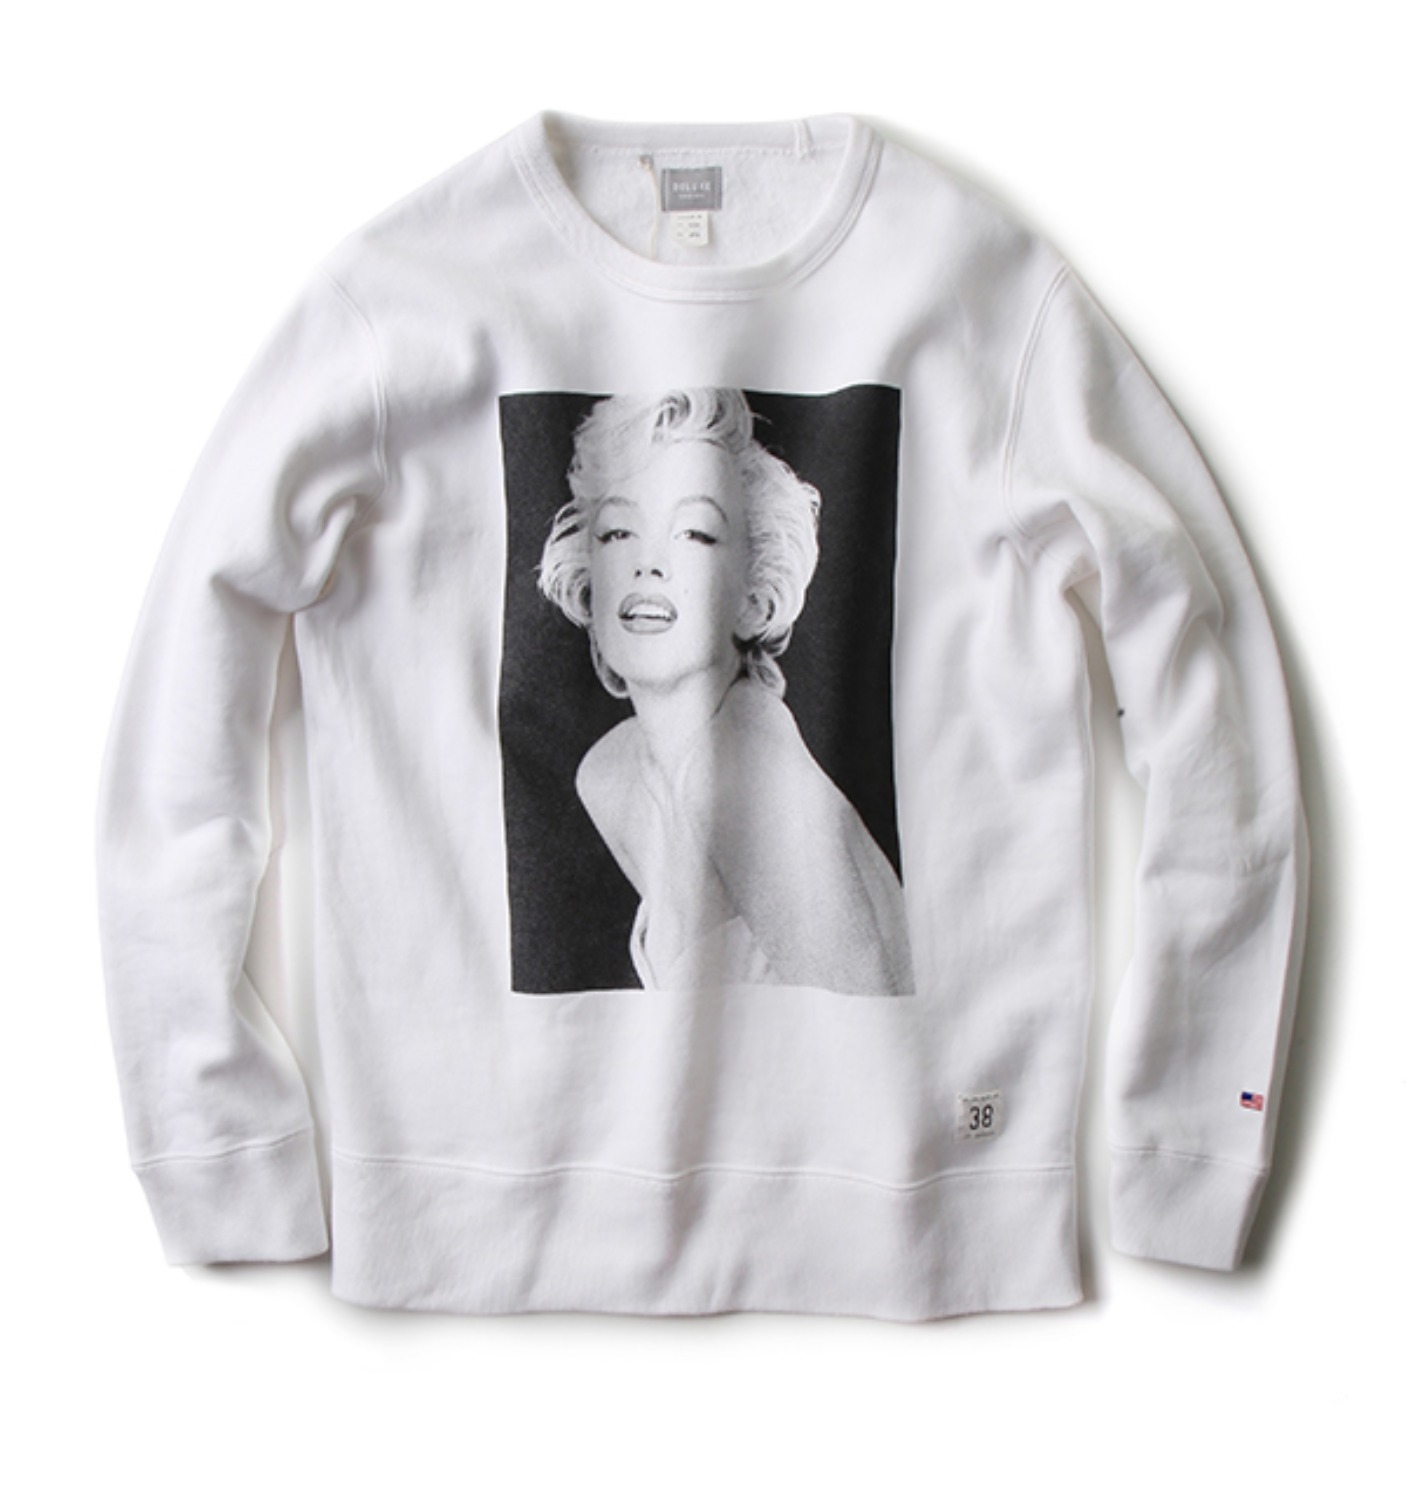 NORMA JEANE SWEAT WHITE